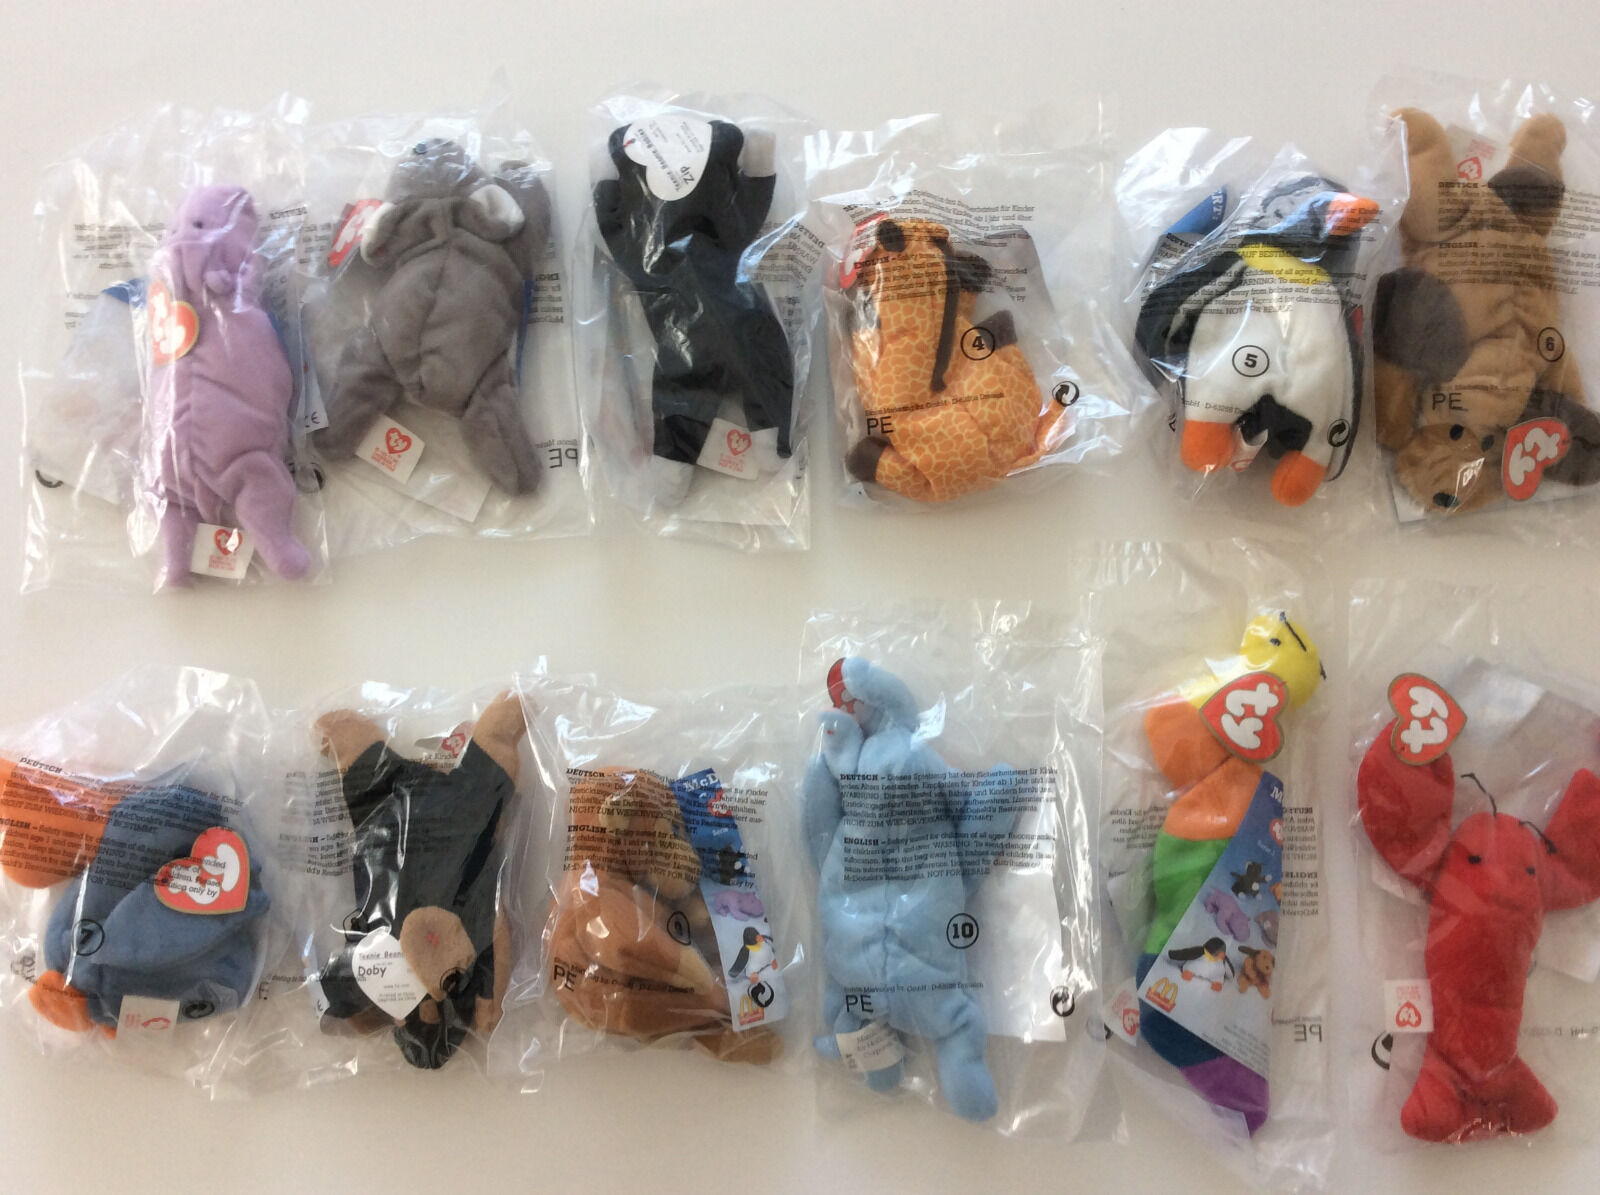 Ty Teenie Beanie Beanie Beanie Babies Set of 12 from 1993 German issued McDonalds Happy Meal 2e4ab4